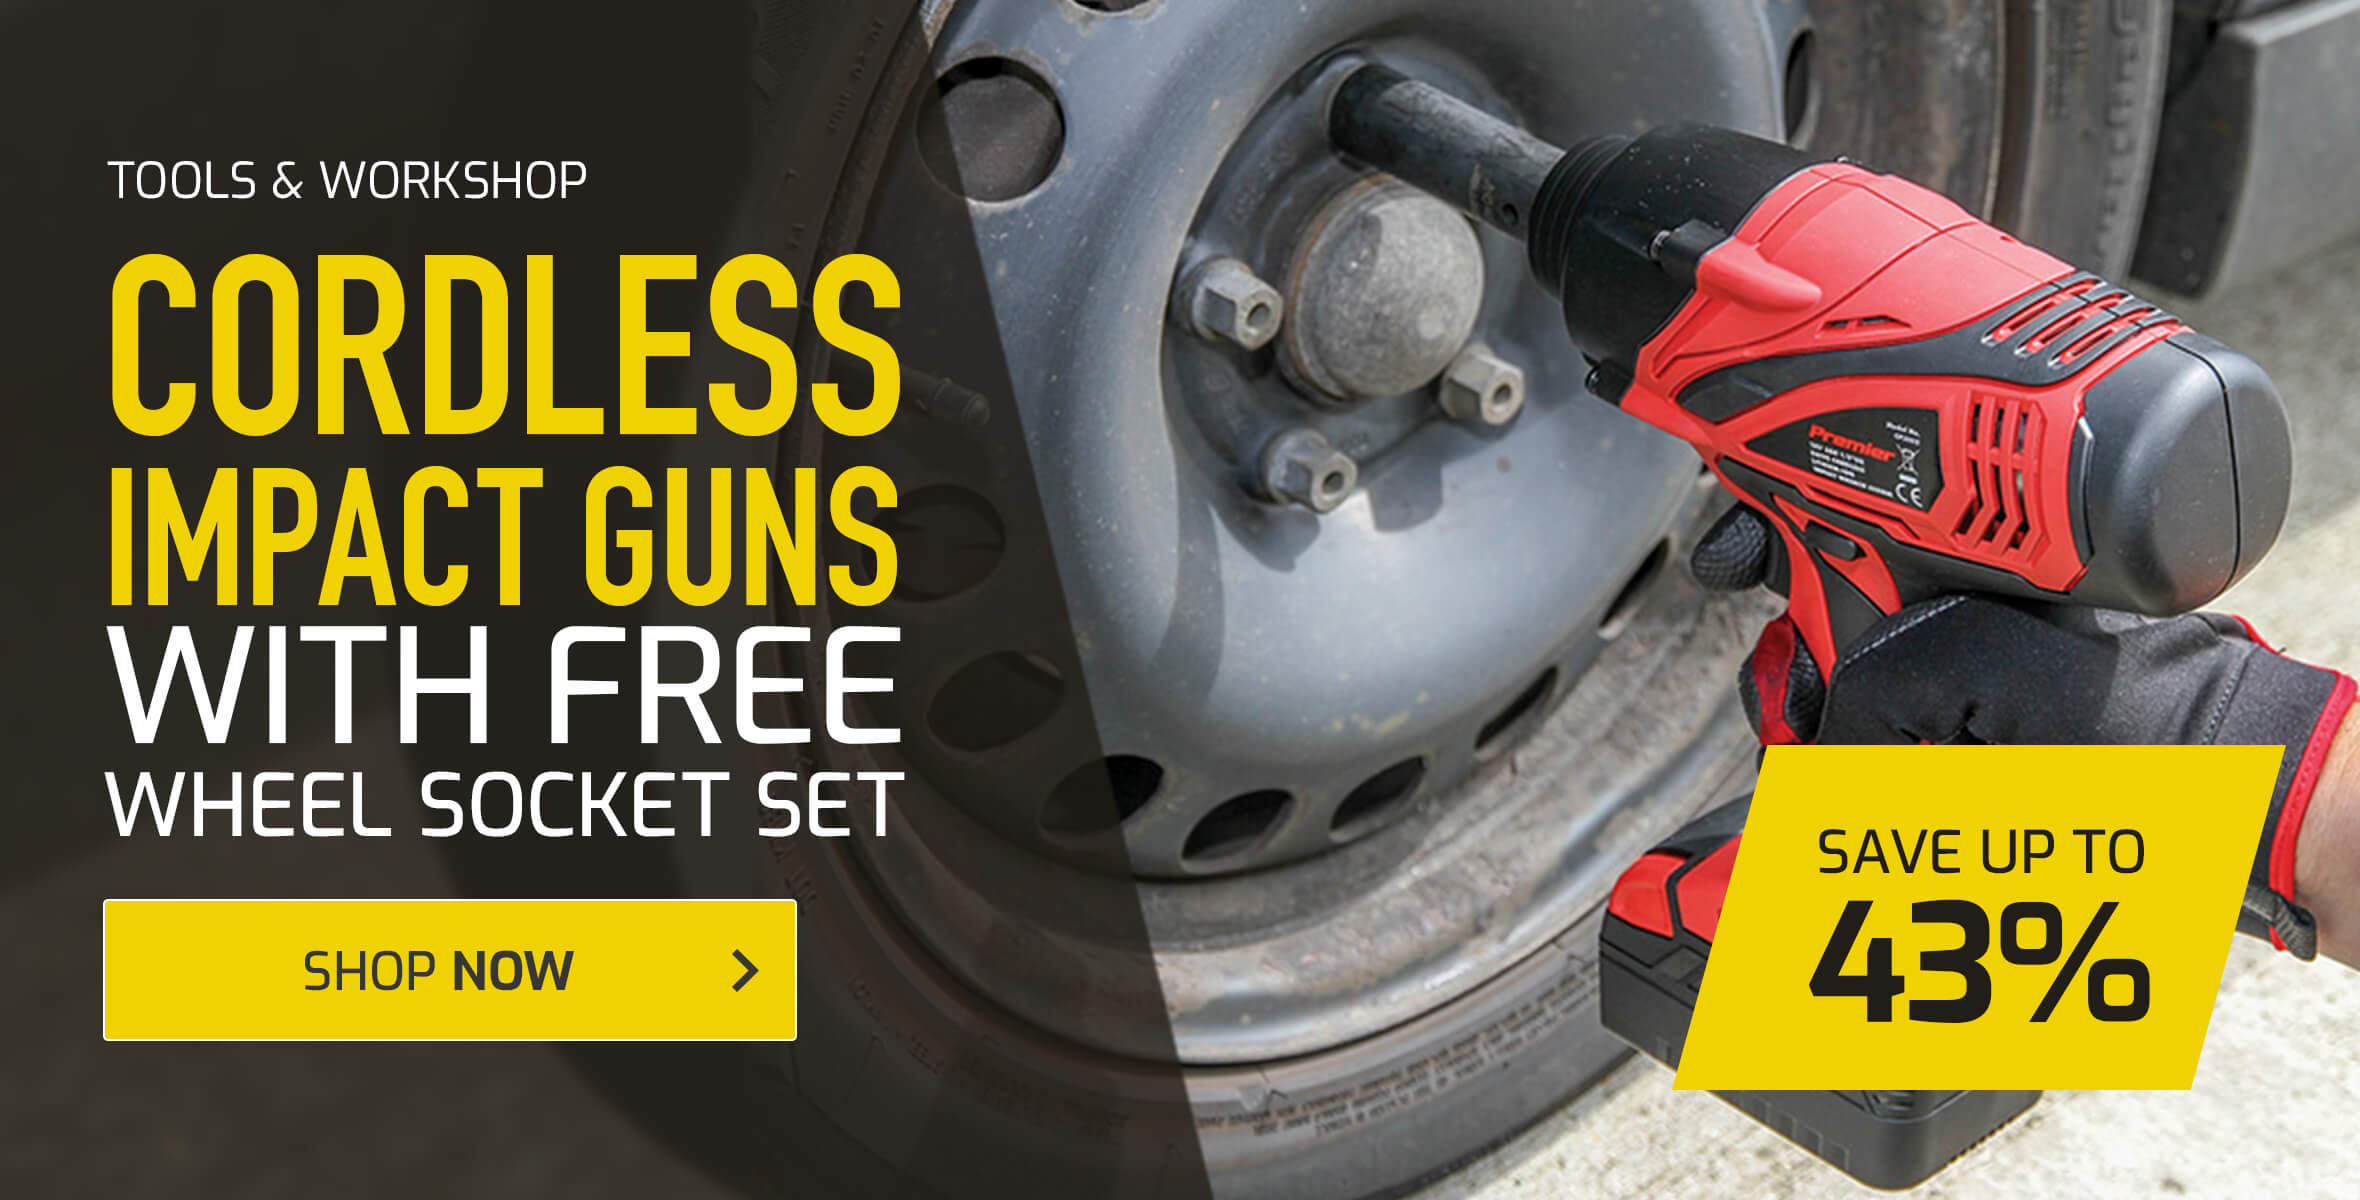 Save up to 43% on Cordless Impact Guns with Free Wheel Socket Set